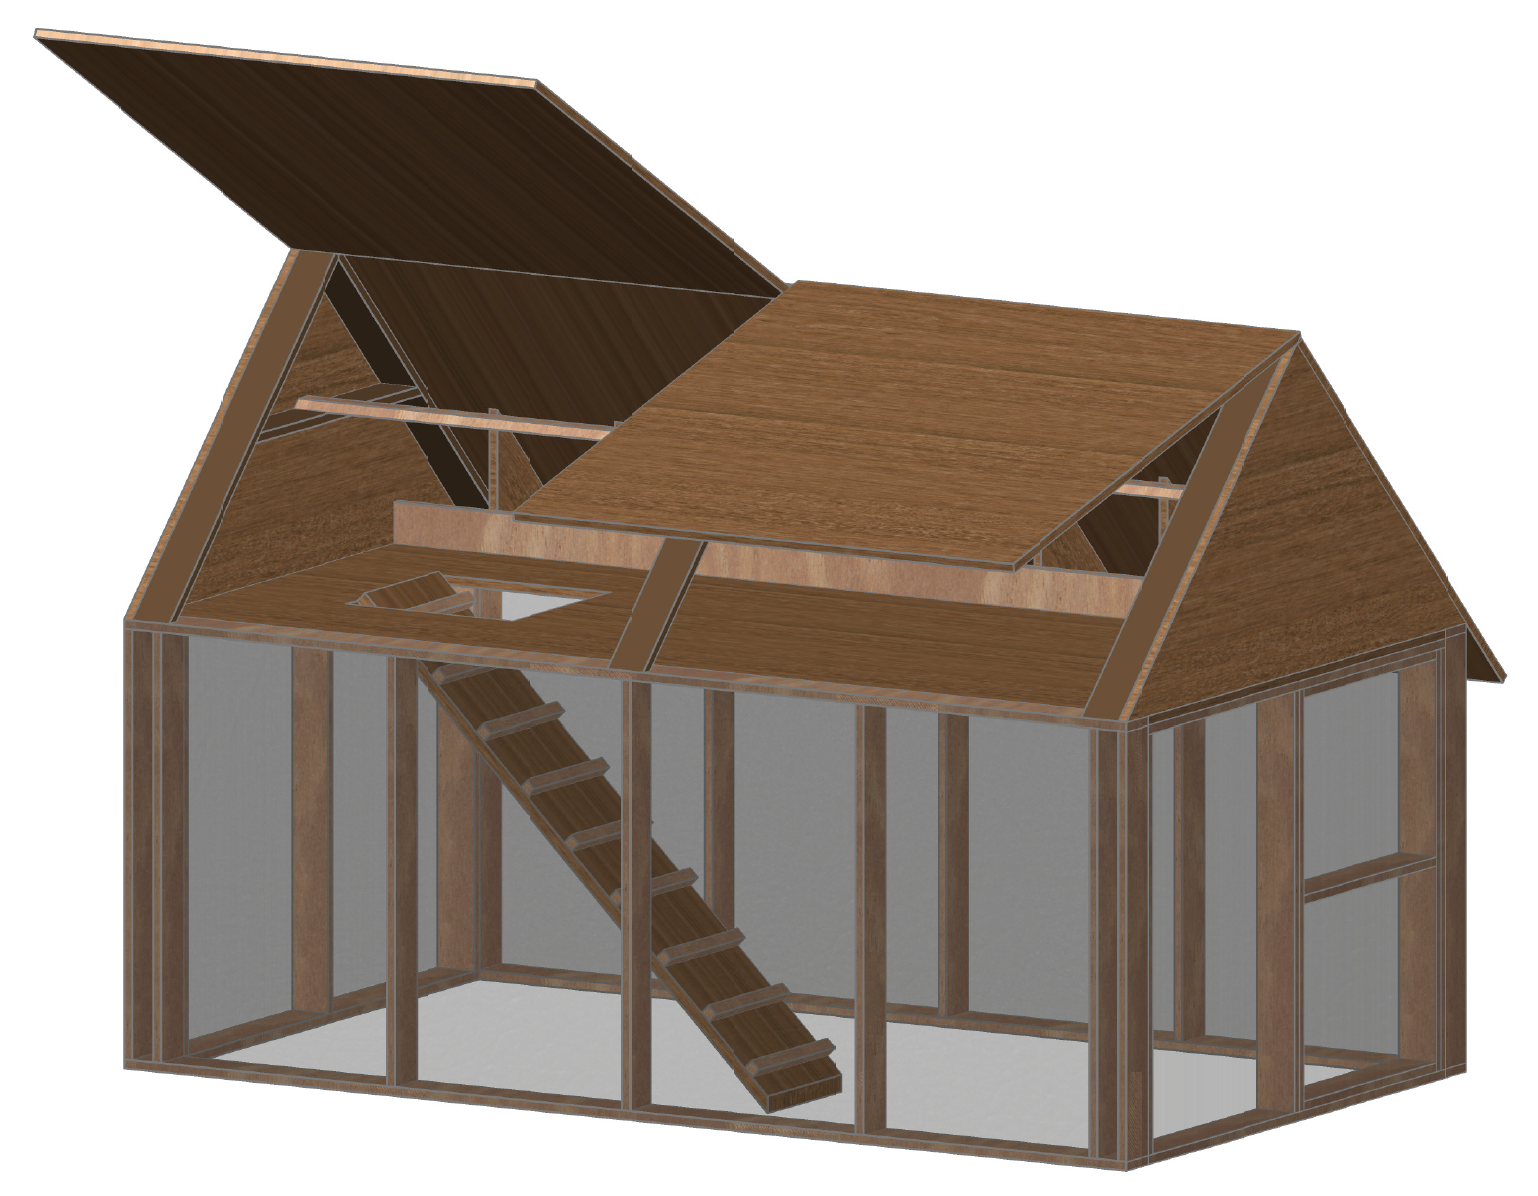 Building a chicken coop building your own chicken coop for Coop house plans